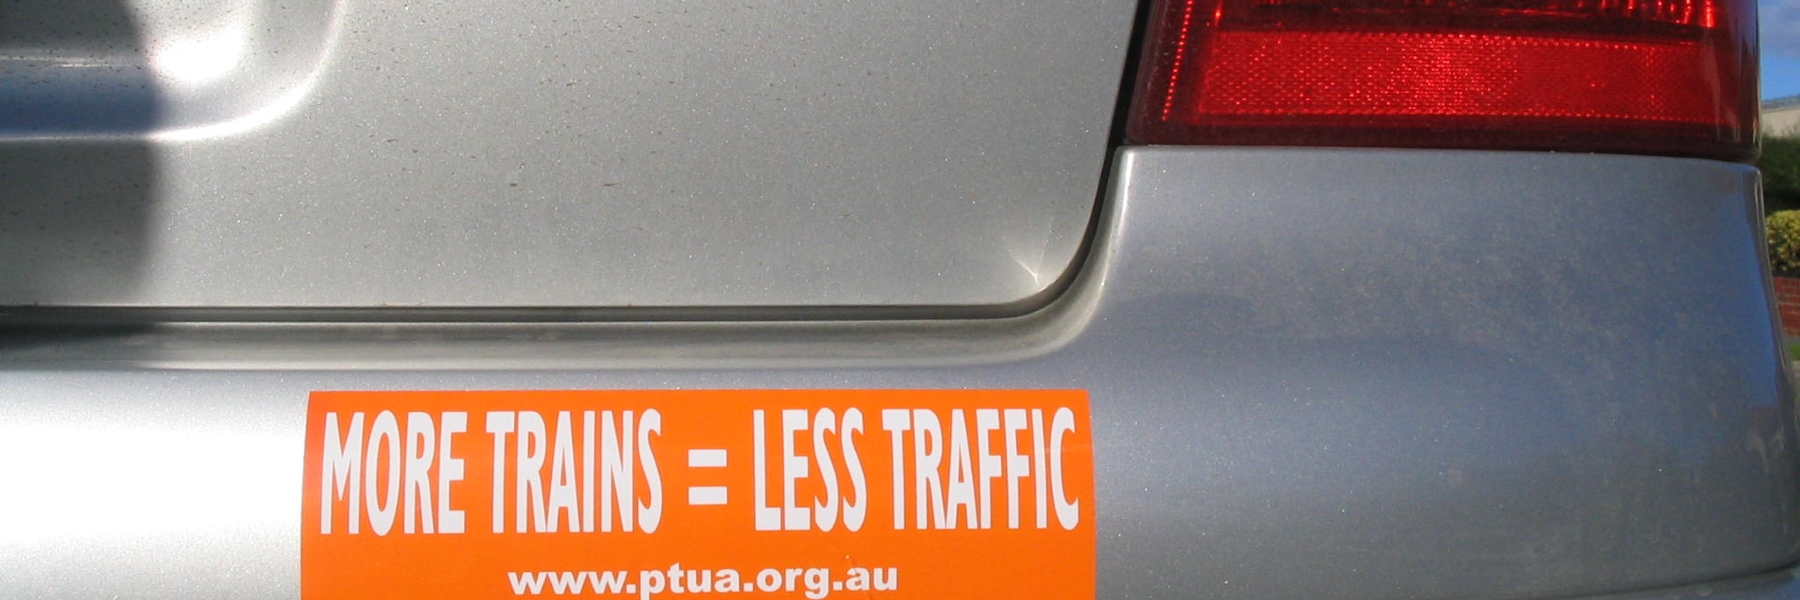 PTUA sticker on car